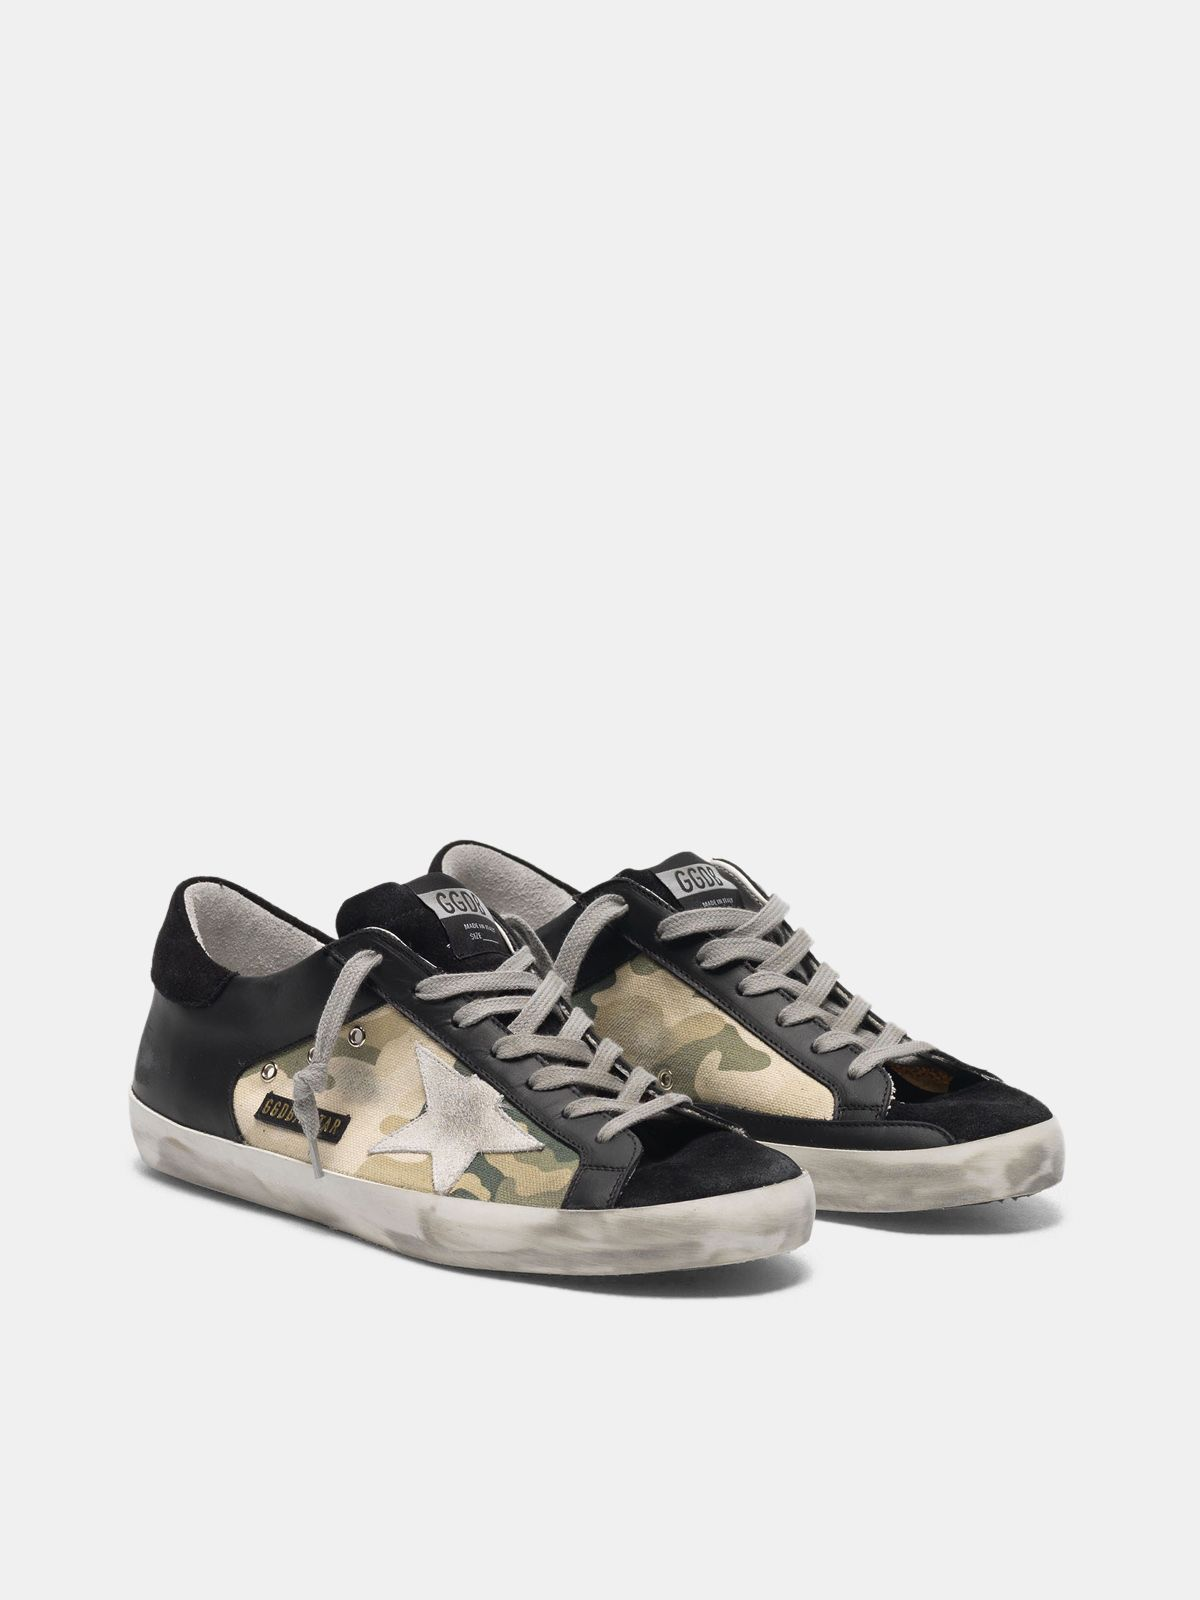 Golden Goose - Sneakers Super-Star nere in pelle e canvas camouflage in